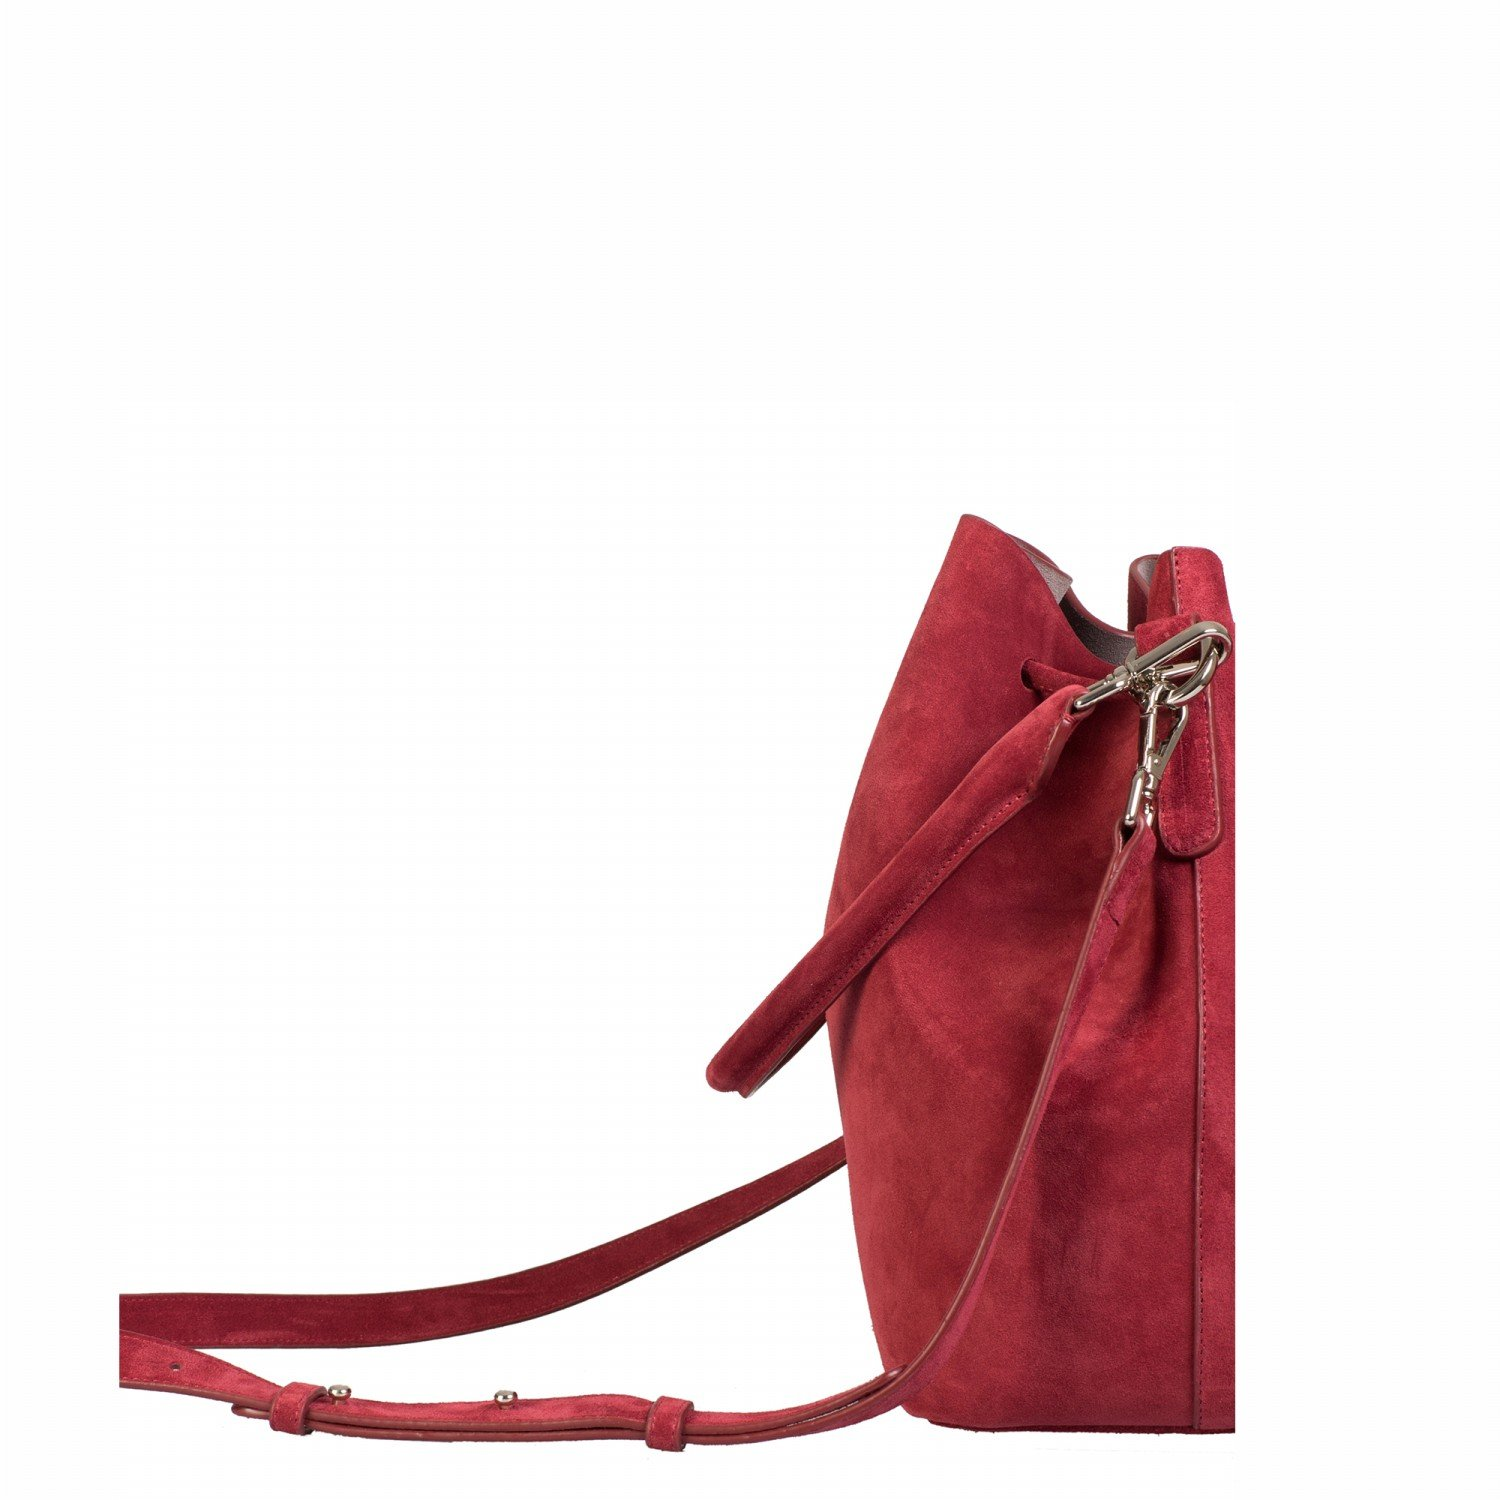 ALESSA DRAWSTRING BAG IN COW LEATHER